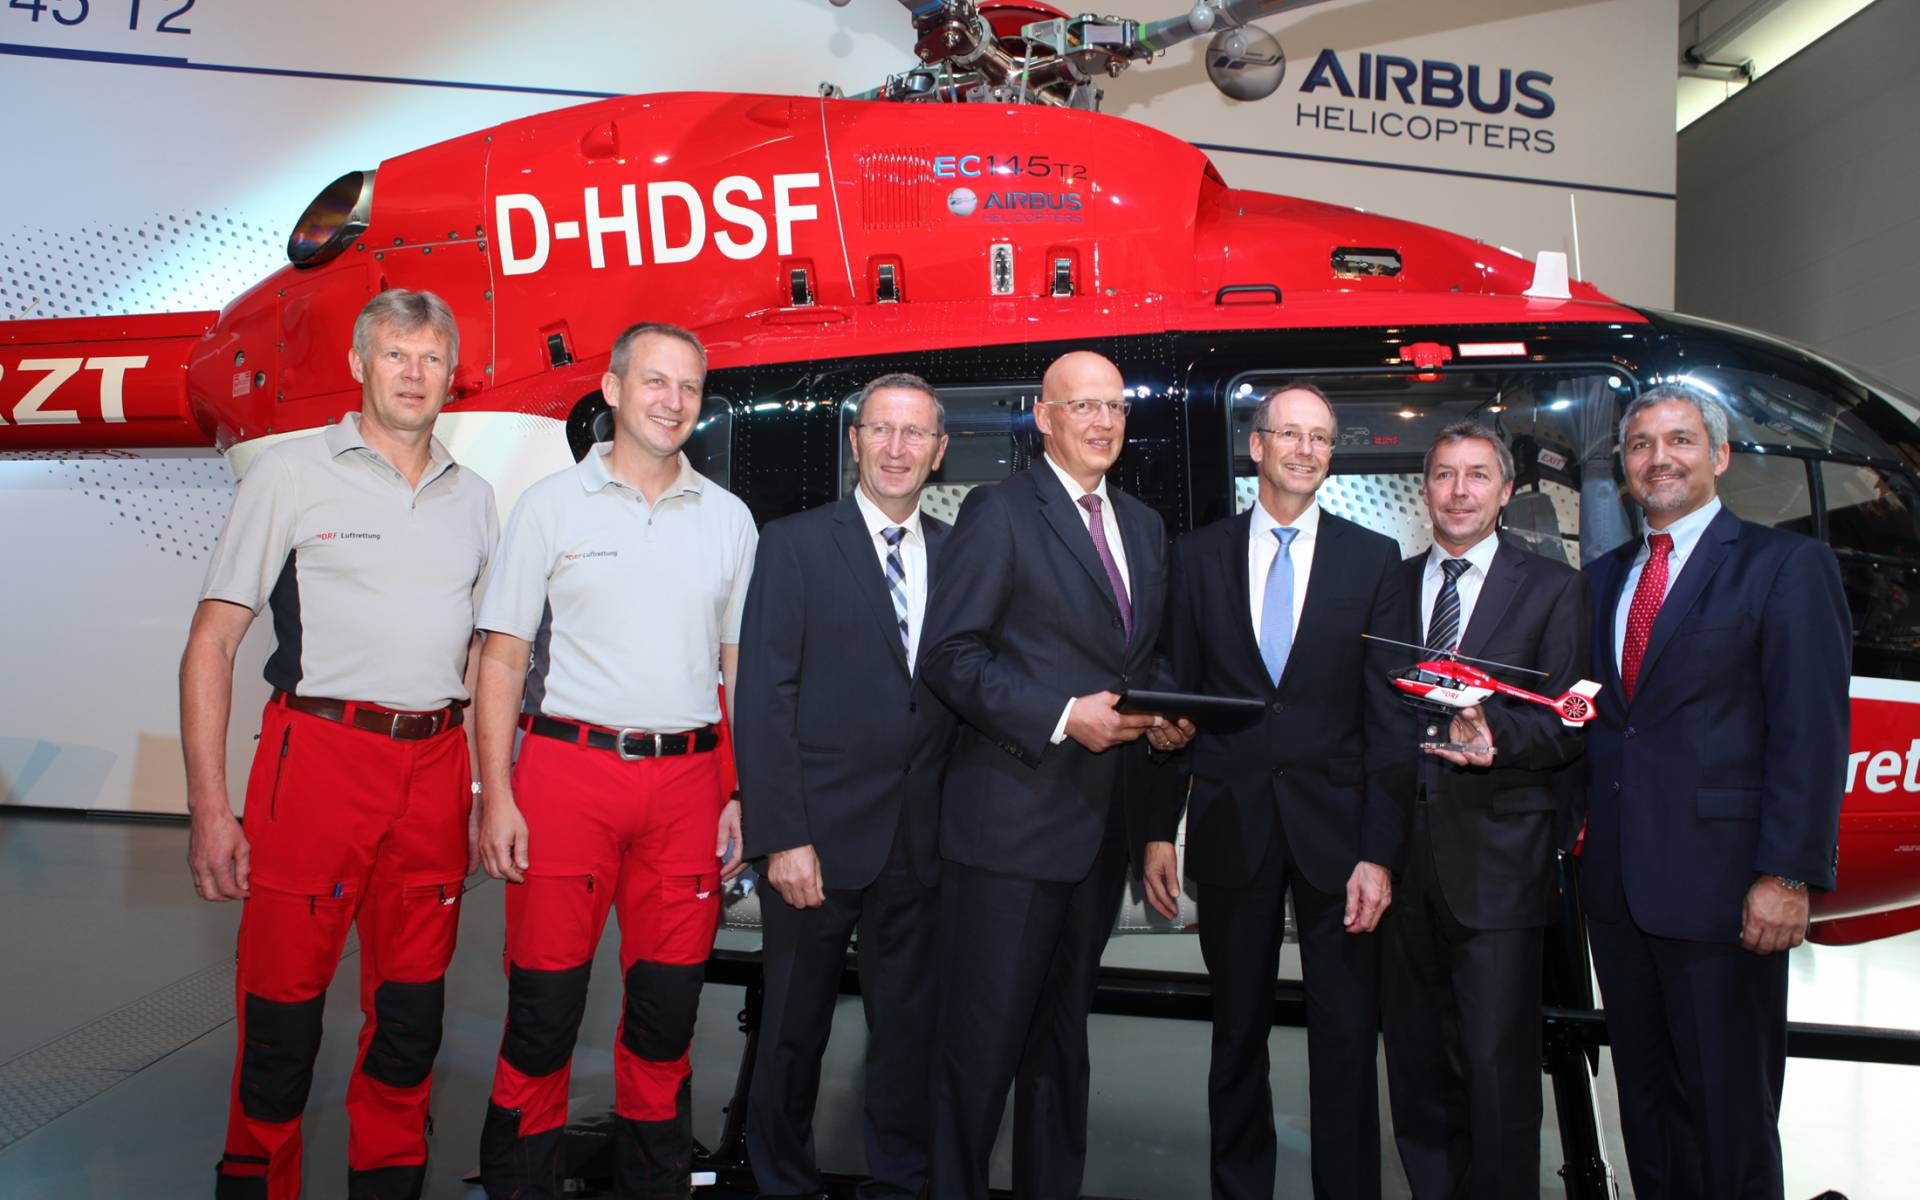 Übergabe der EC 145 T2. V.l.n.r.: Johann Haslberger (Pilot DRF Luftrettung), Franz Ahollinger (Pilot DRF Luftrettung), Manfred Merk (Head EC145 Program), Dr. Hans Jörg Eyrich (Vorstand DRF Luftrettung), Dr. Wolfgang Schoder (CEO Airbus Helicopters Deutschland), Steffen Lutz (Vorstand DRF Luftrettung) und Thomas Hein (Vice President Customer Relations and Sales Europe for Airbus Helicopters). © Airbus Helicopters